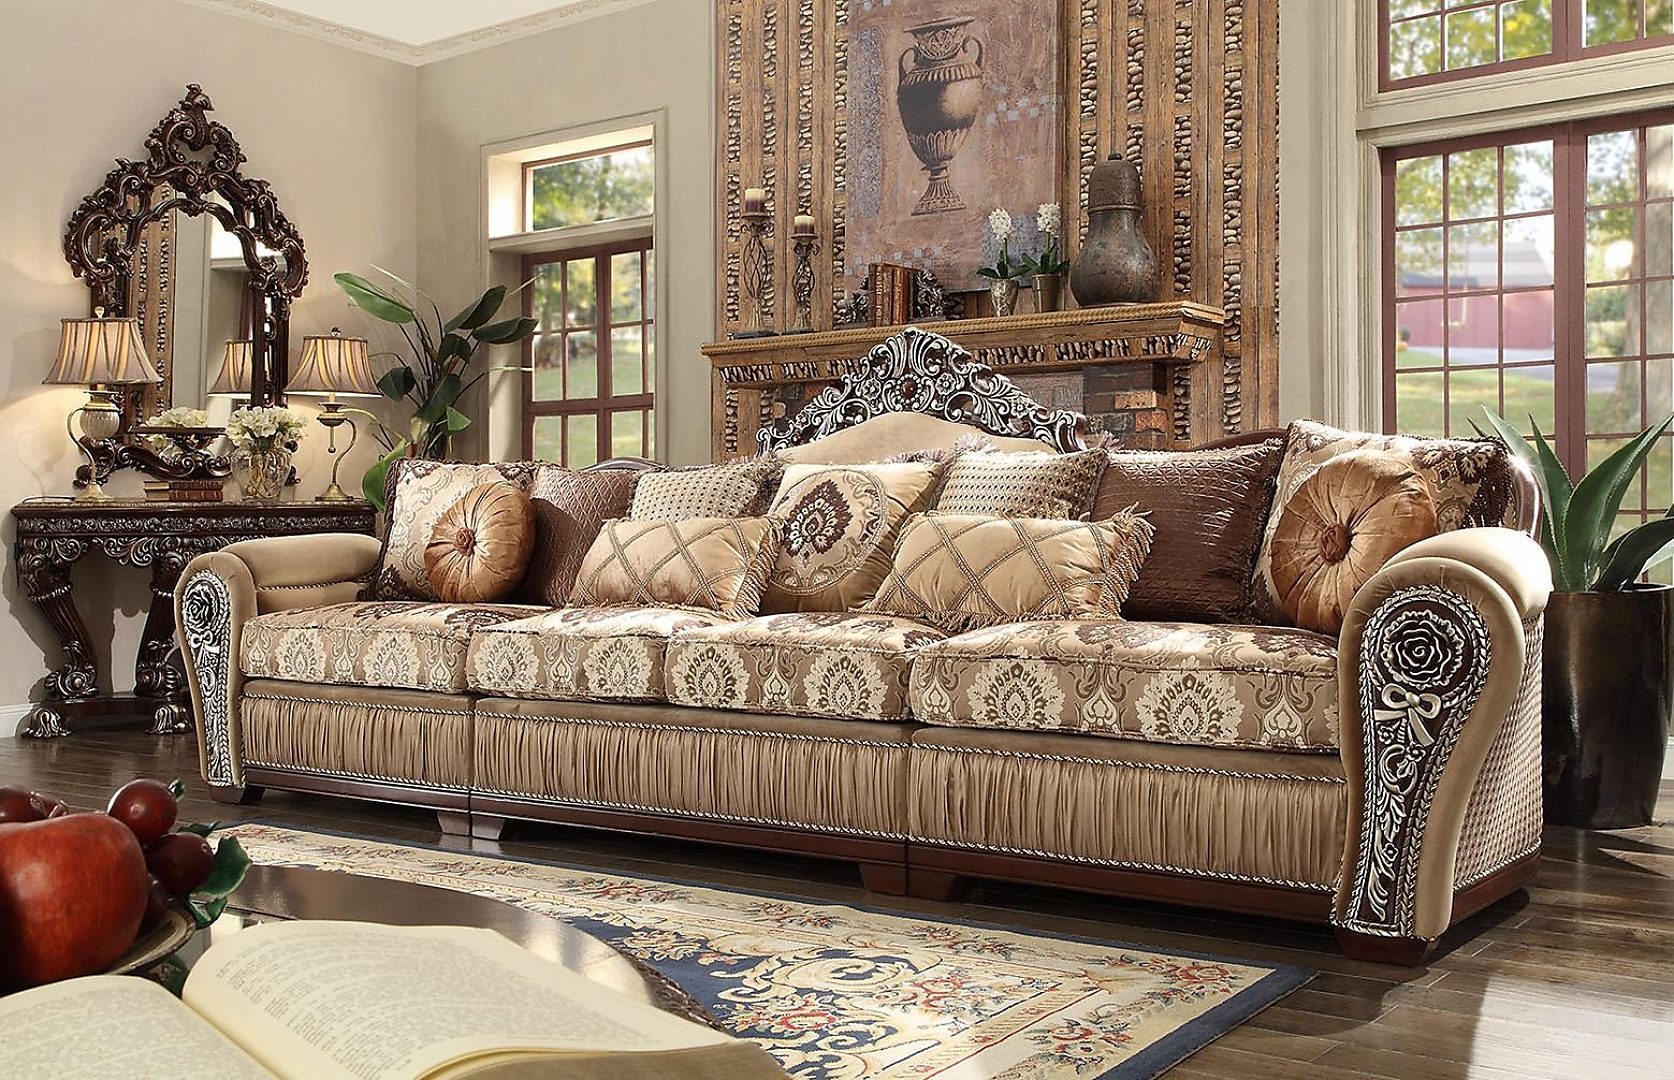 Traditional HD-1632 Sectional Sofa Set 3Pcs by Homey Design